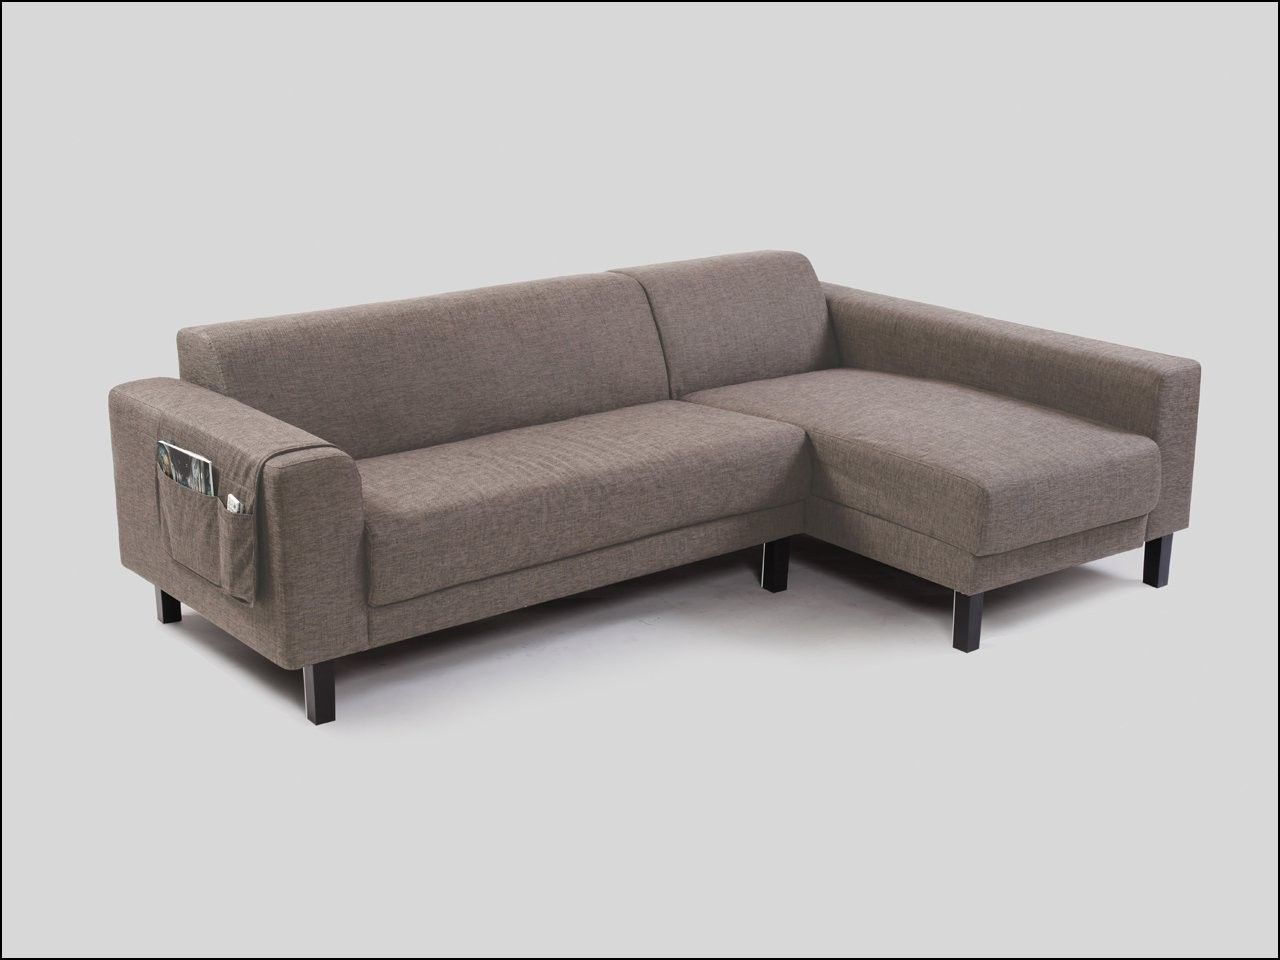 L Shaped Sofa Cheap Couch Sofa Gallery Pinterest Couch Sofa ~ Brown Leather L Shaped Sofa